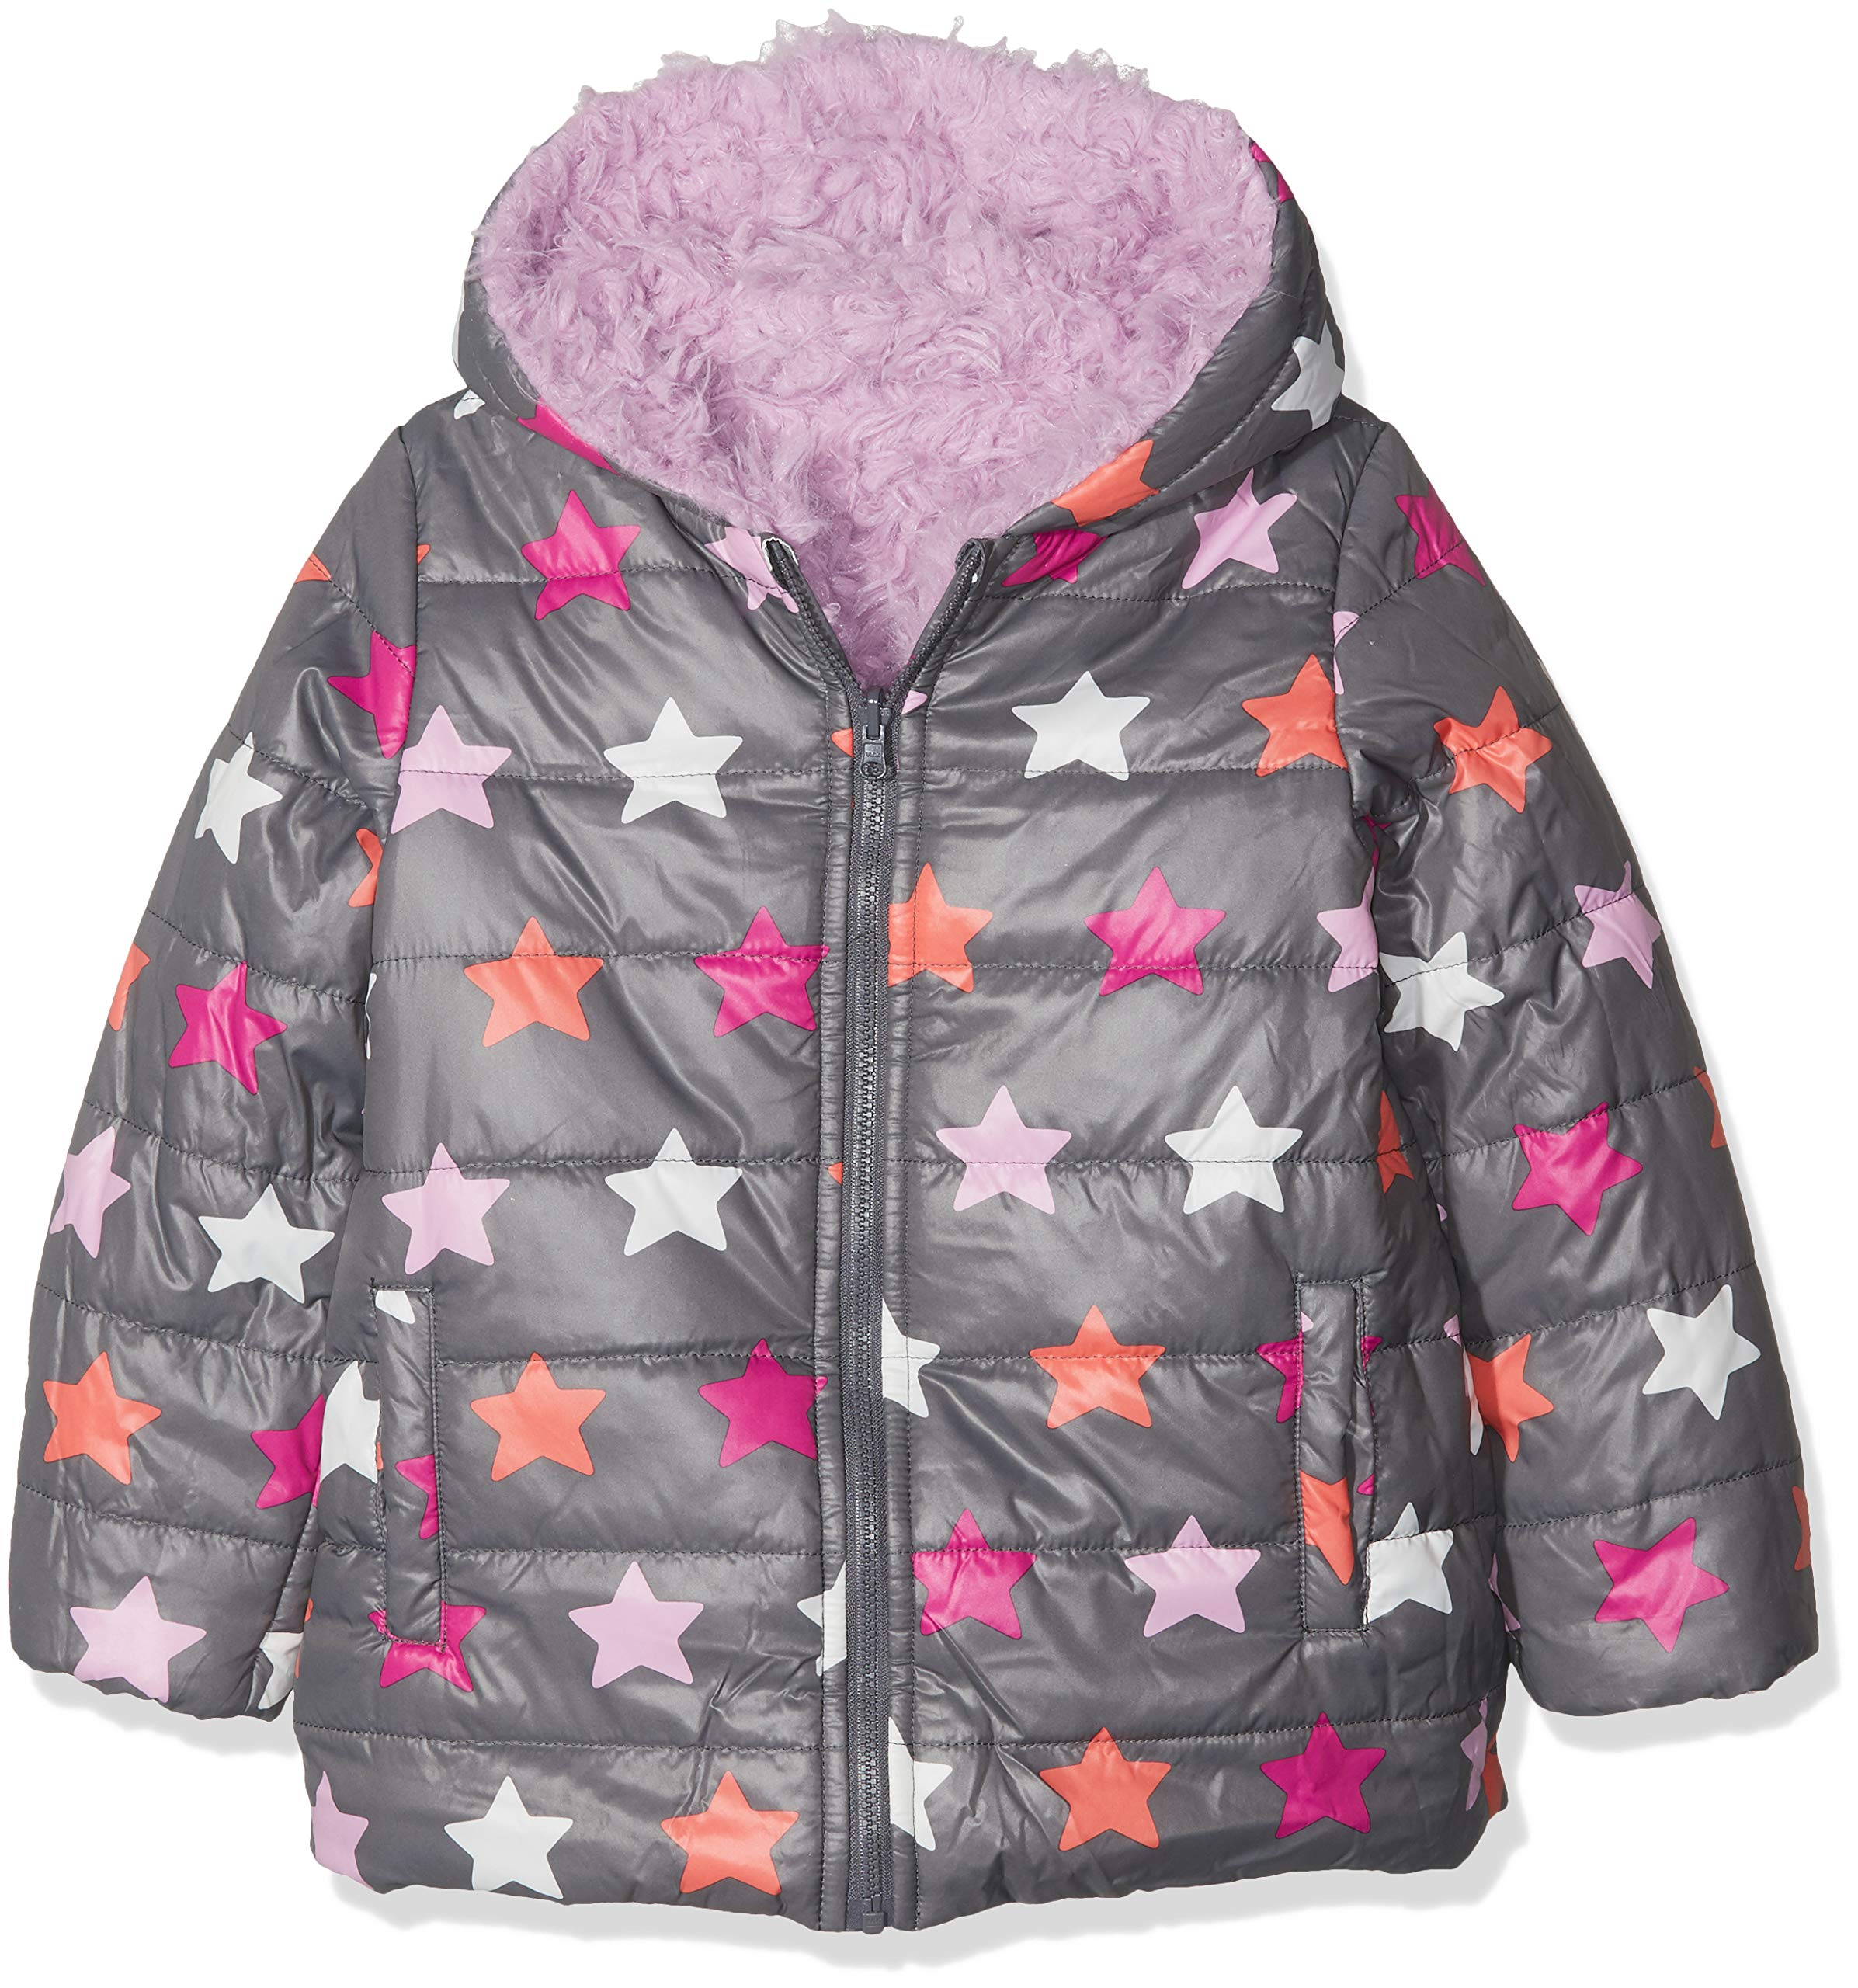 boboli Reversible Technical Fabric Parka For Baby Girl Abrigo para Bebés 2